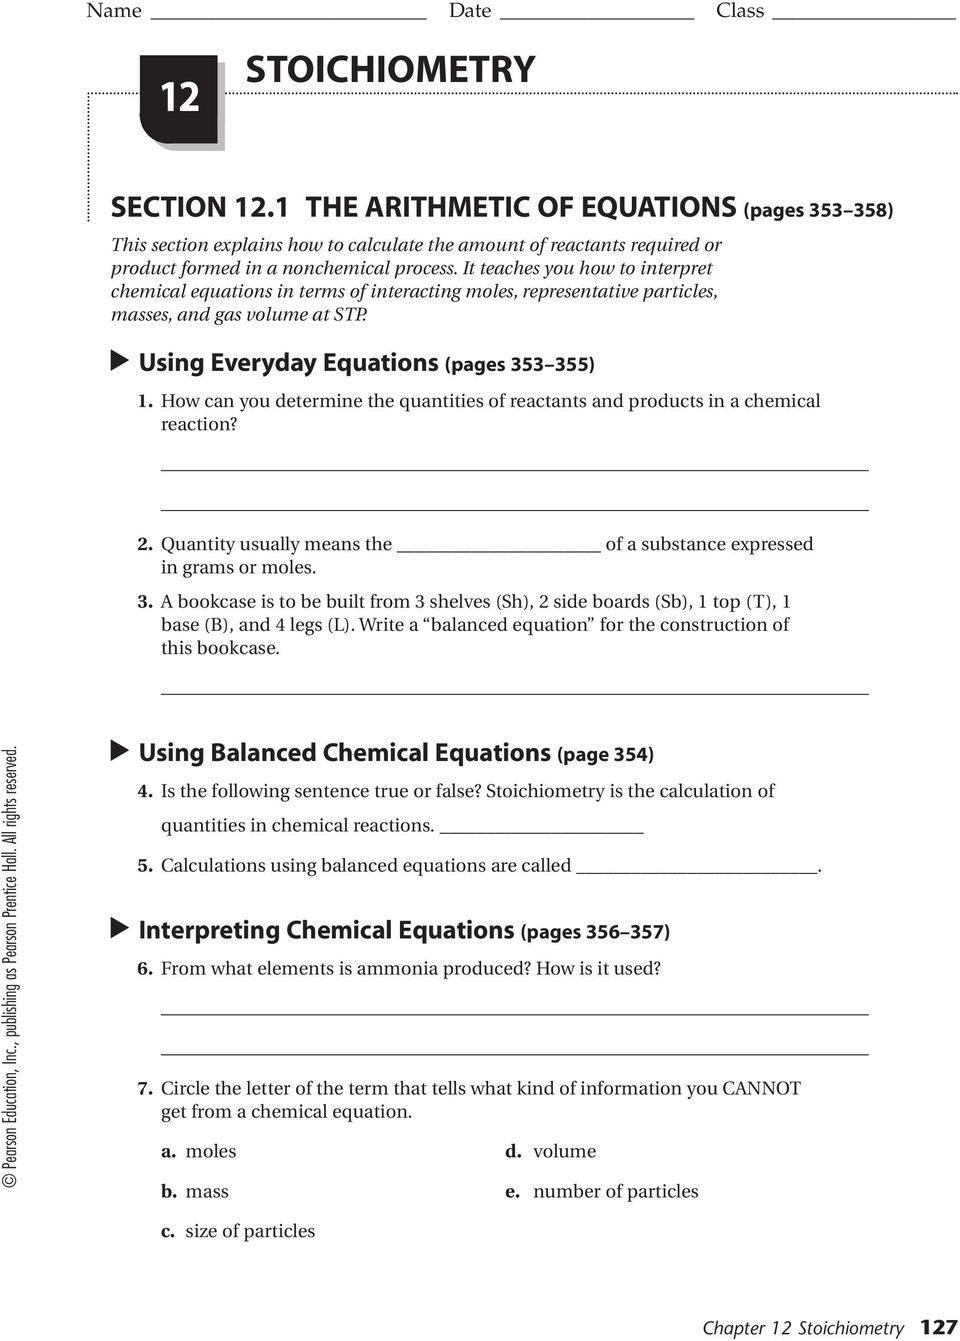 Business Math Worksheets For High School : Business math worksheets with answers emmacarrolletc